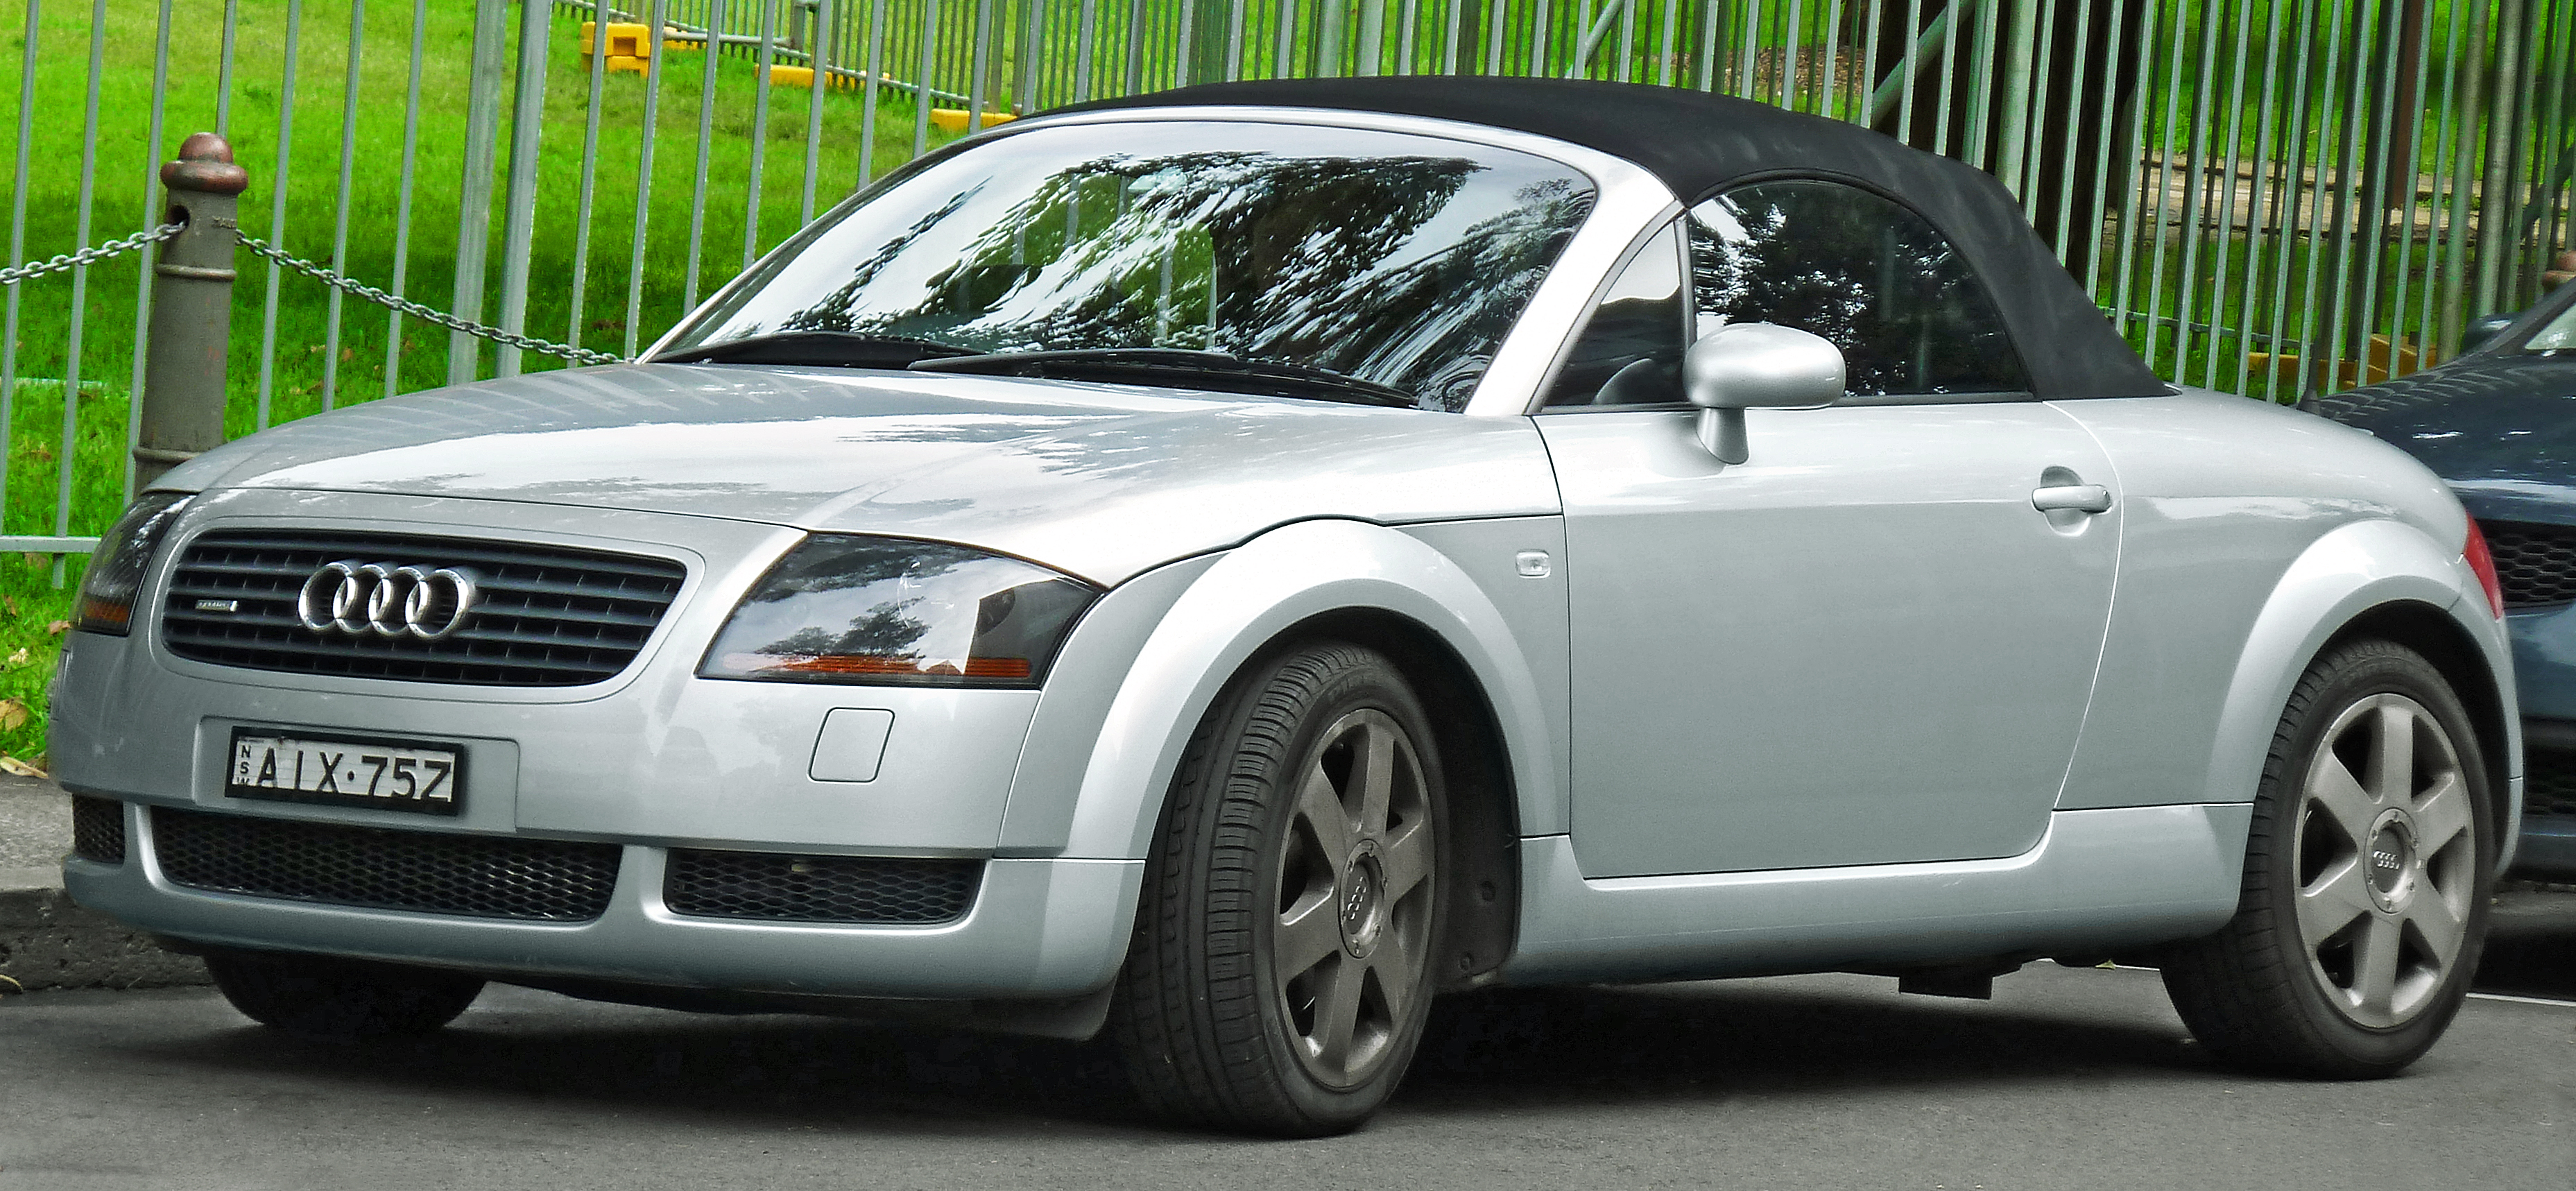 Description 2000 Audi TT (8N) 1.8 T quattro roadster (2011-12-06) 01 ...